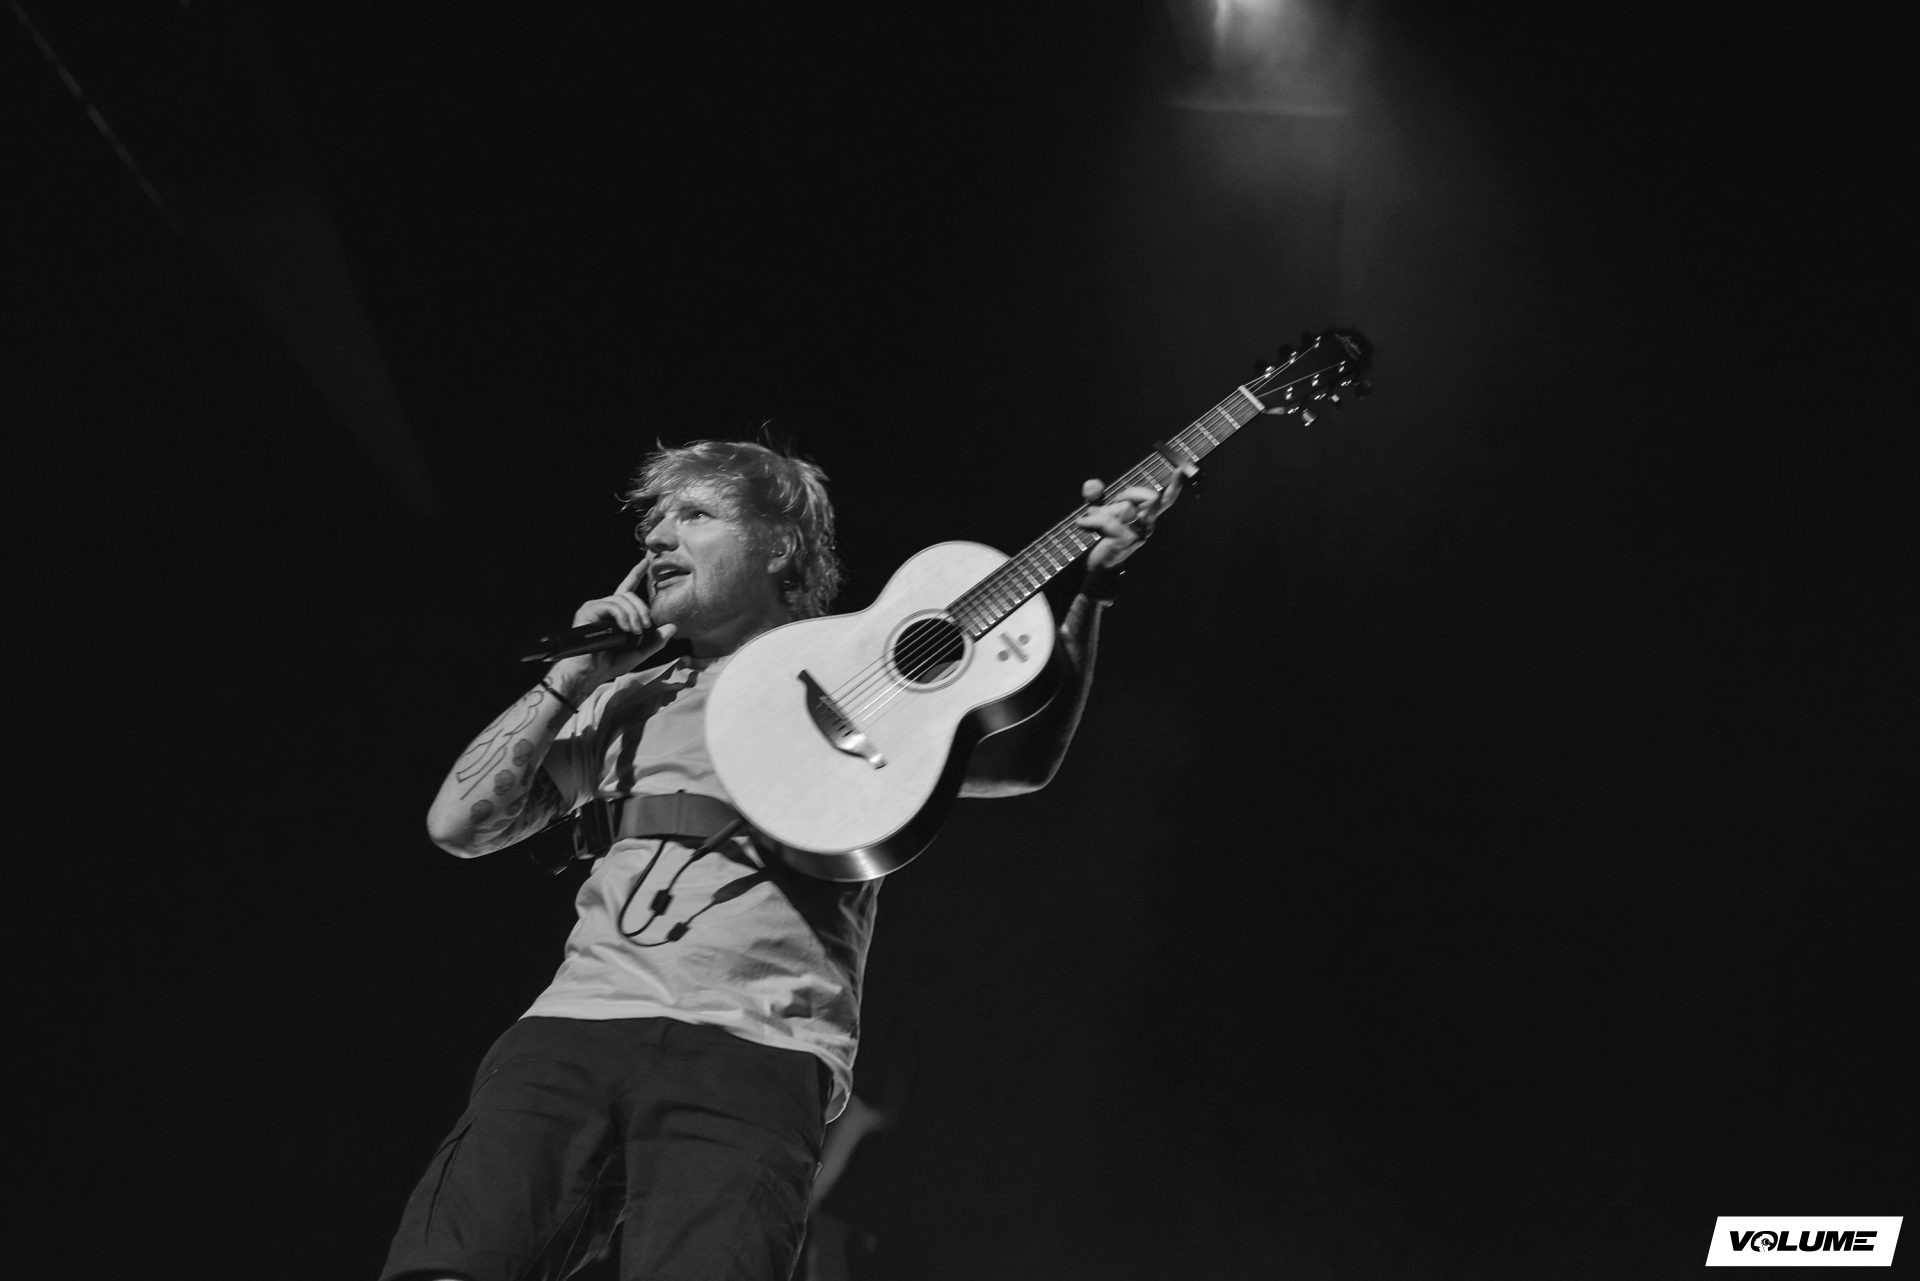 20180807 EdSheeran StadionWien 66 1920x1281 photo x3